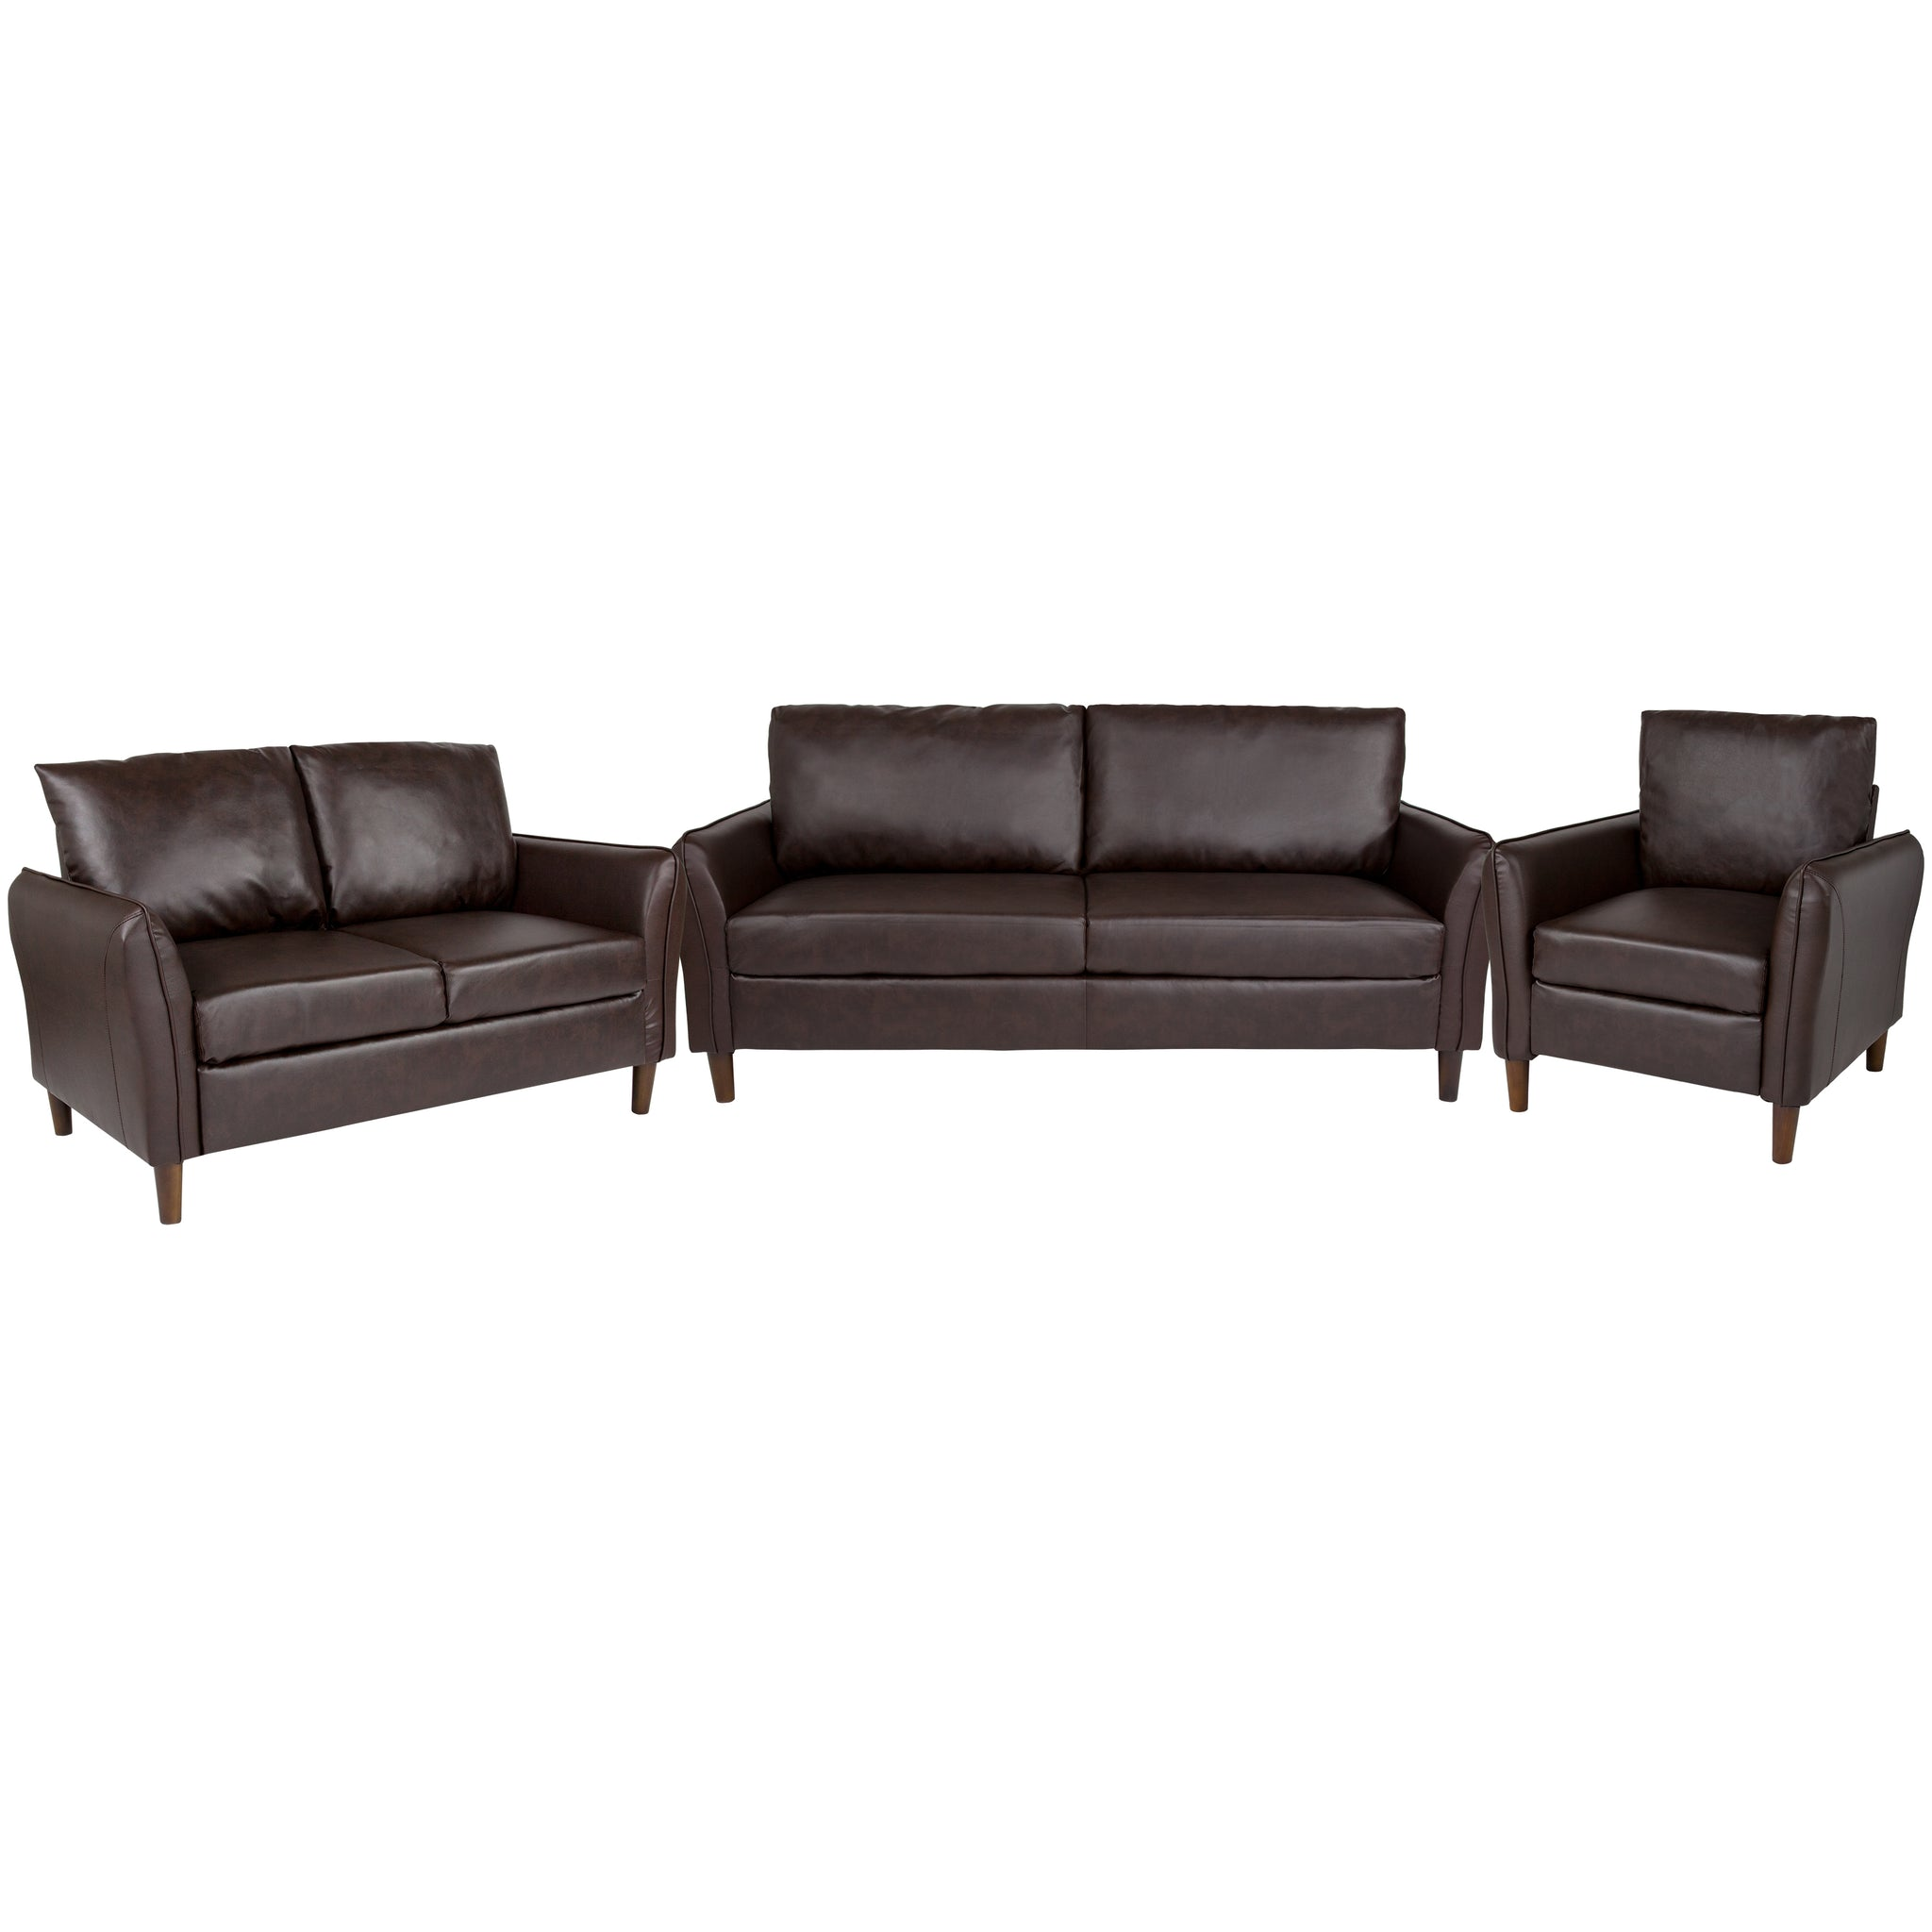 Milton Park Upholstered Plush Pillow Back Chair, Loveseat and Sofa Set in Brown Leather